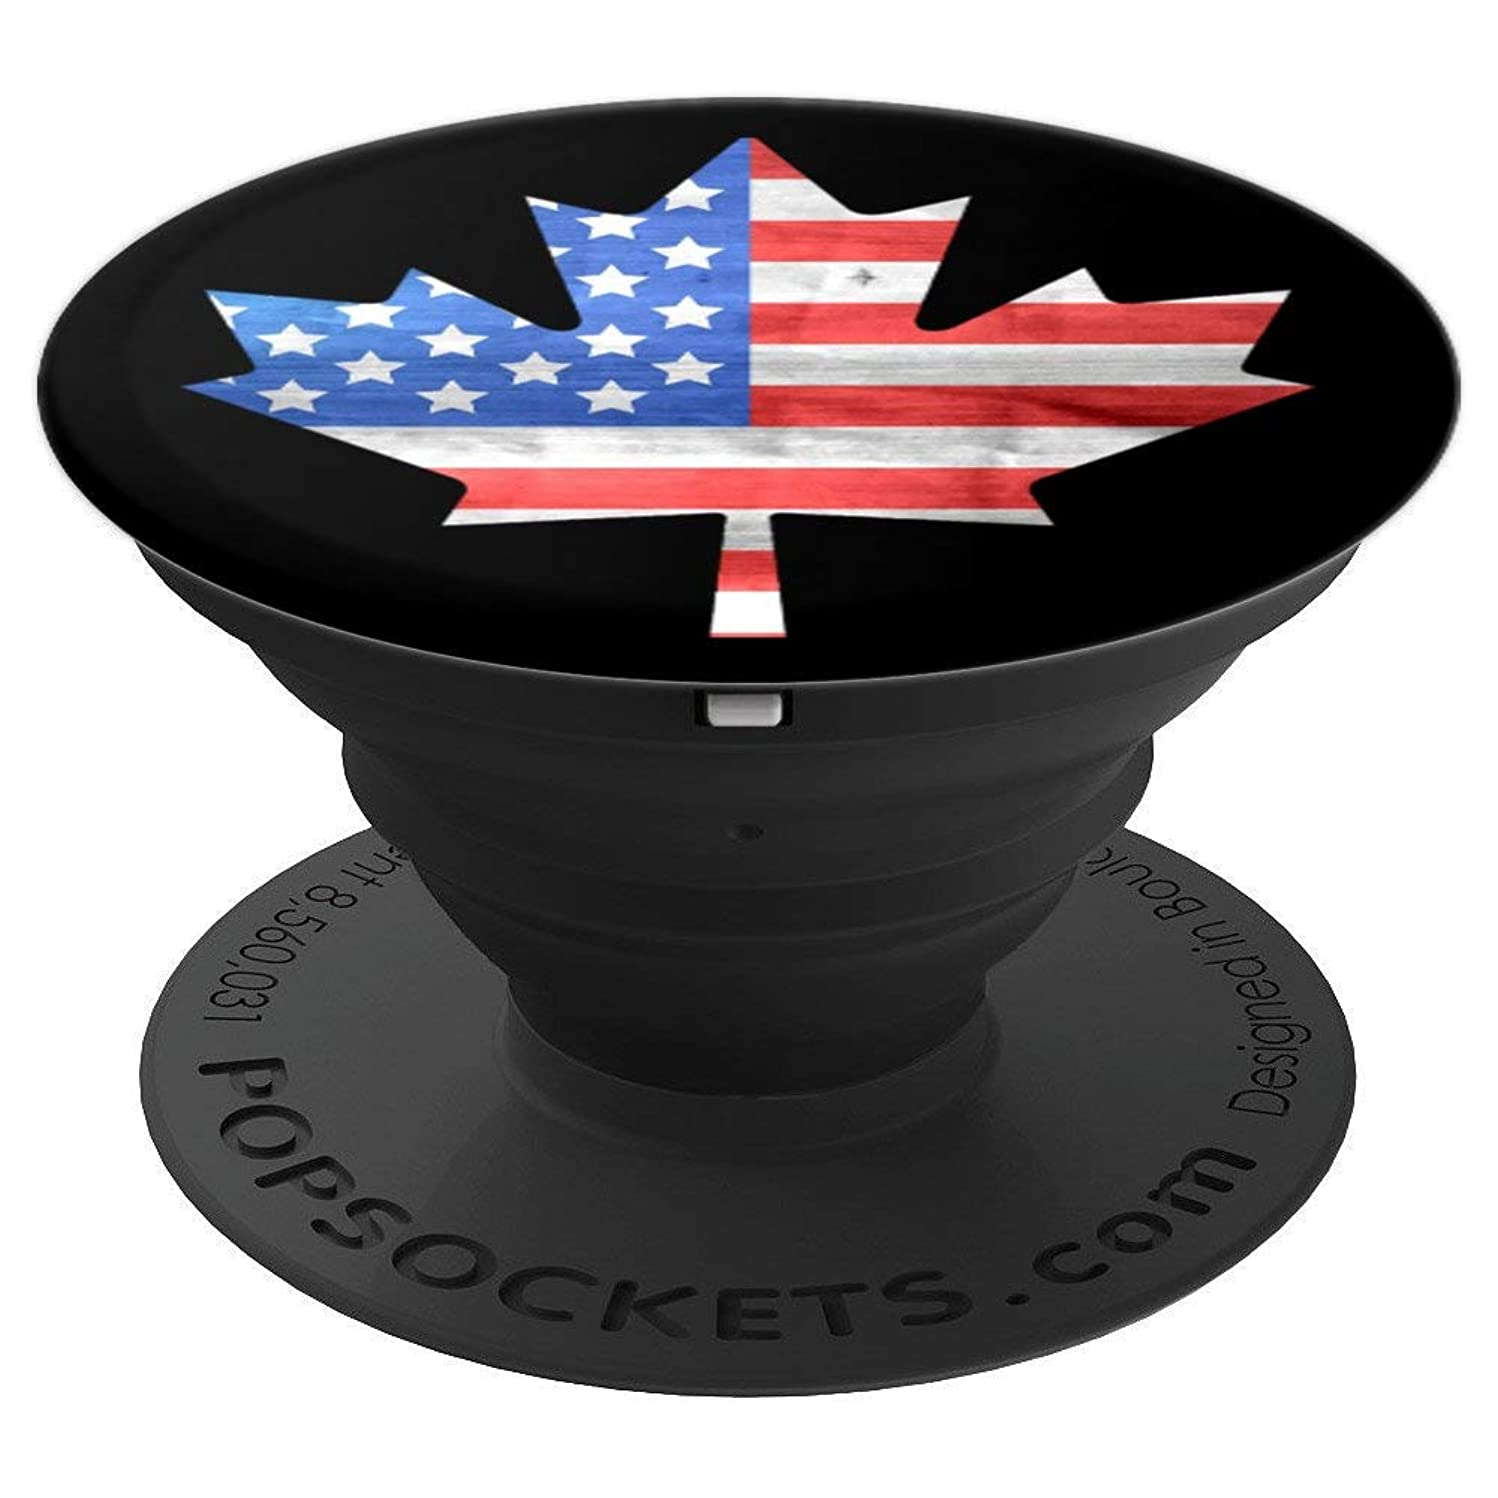 American flag on canadian maple leaf, canada phone grip - PopSockets Grip and Stand for Phones and Tablets